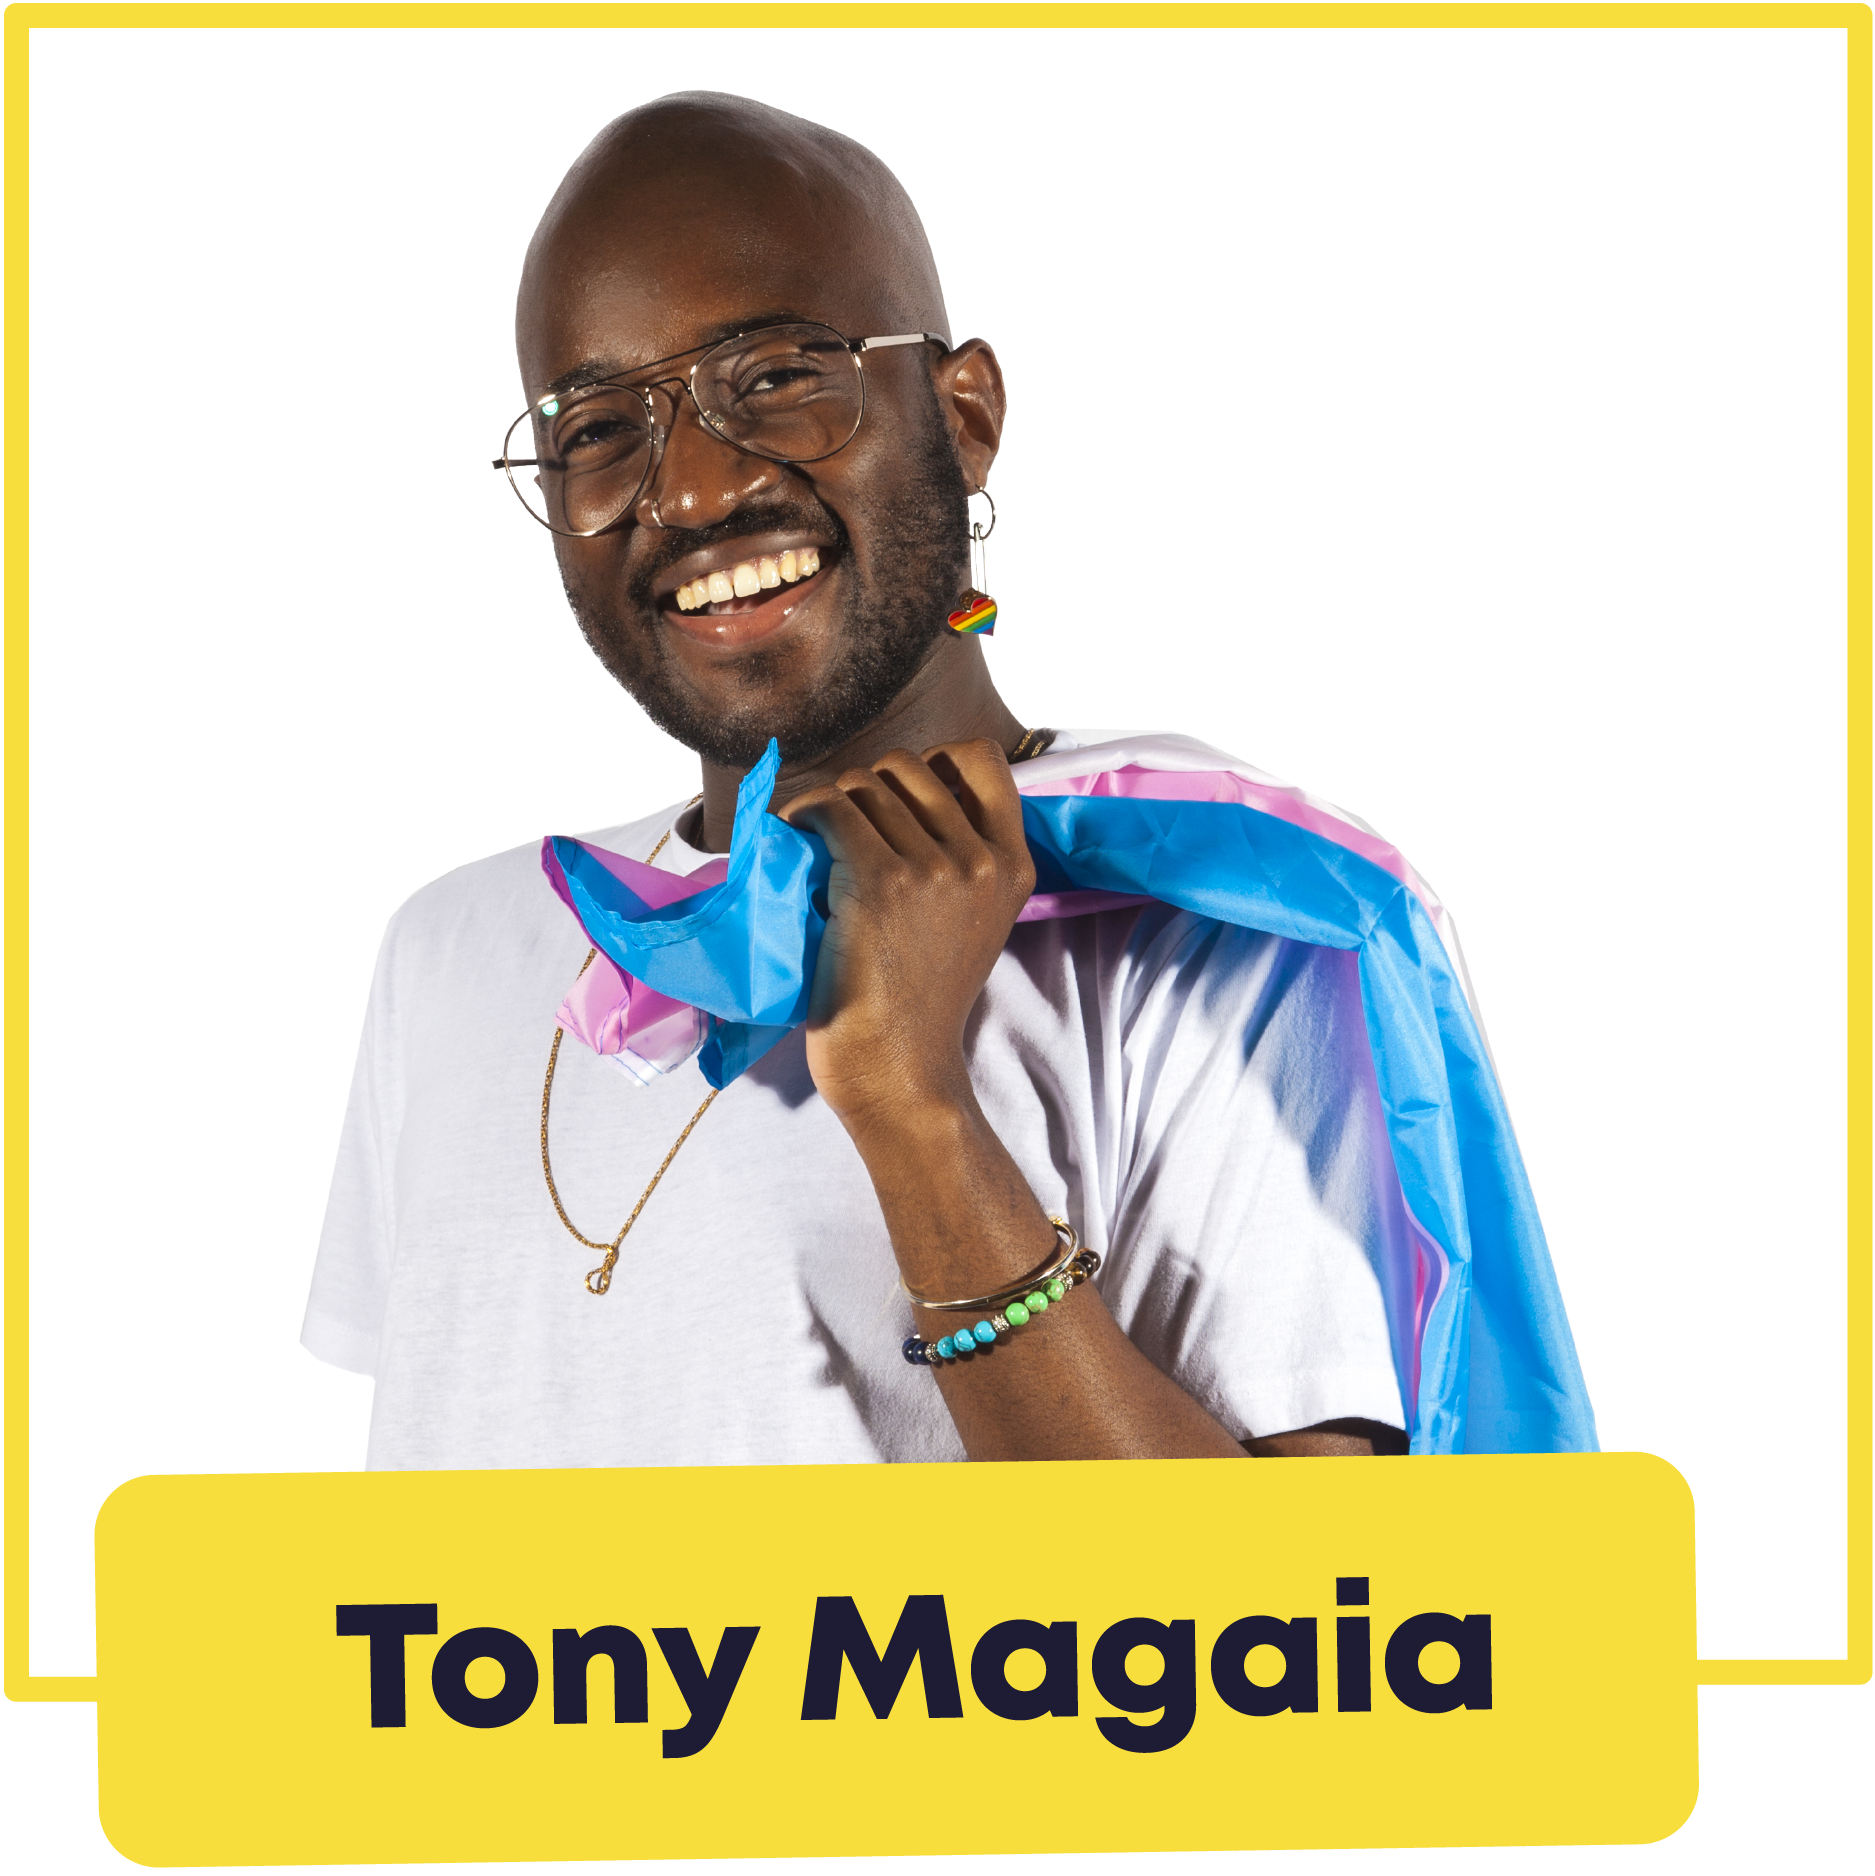 Image of Tony Magaia, Liberation Officer 2020/21